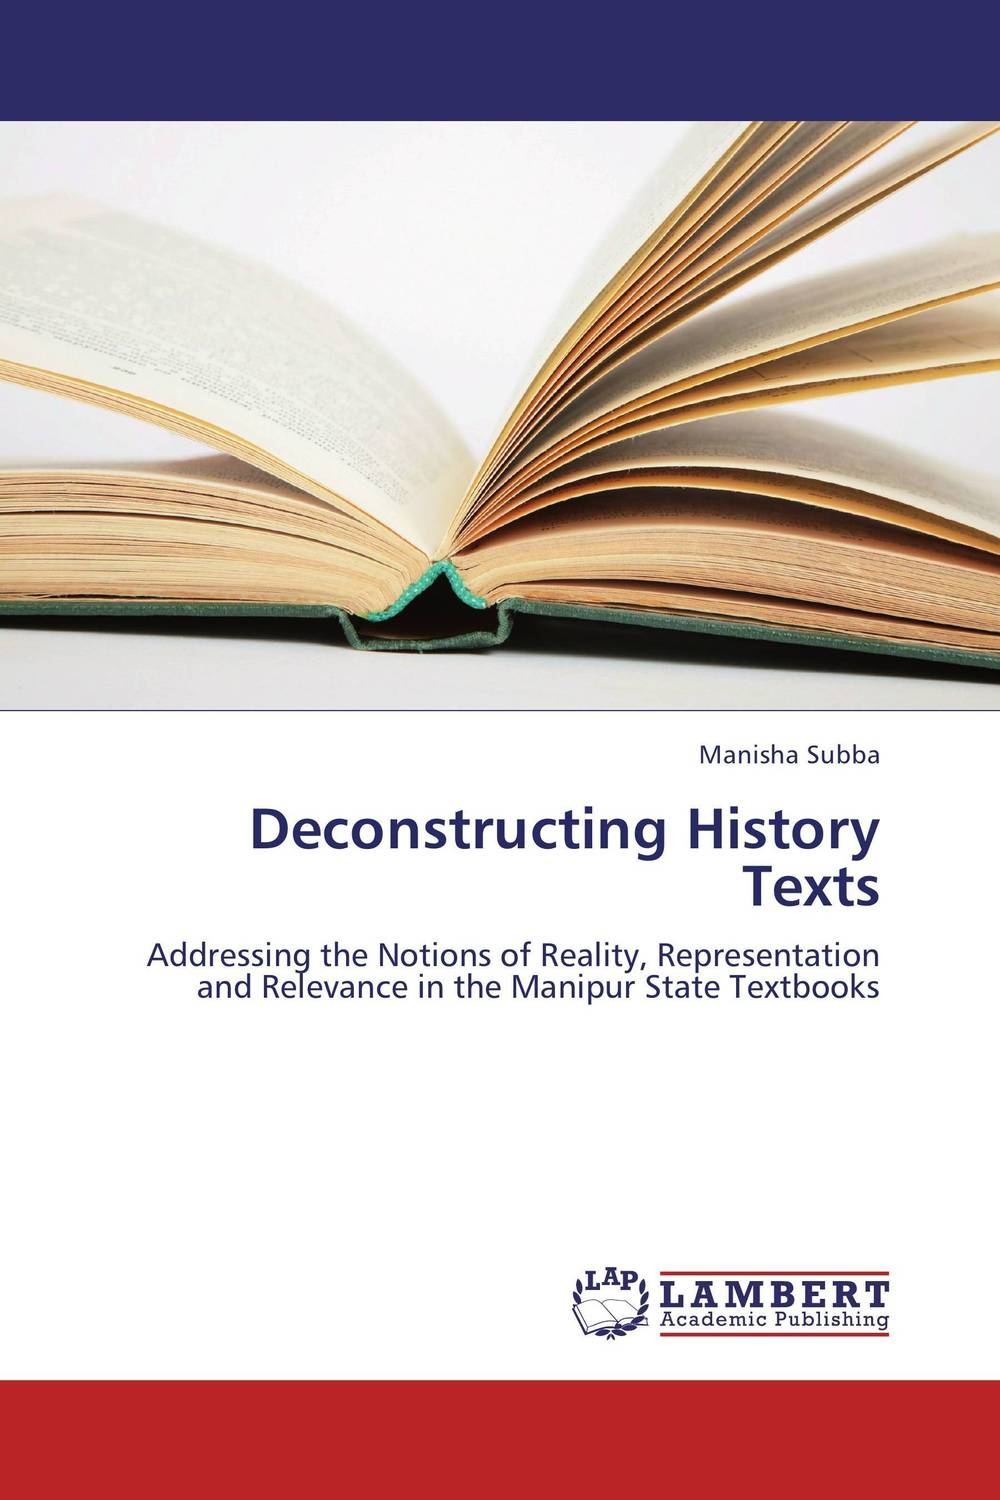 Deconstructing History Texts